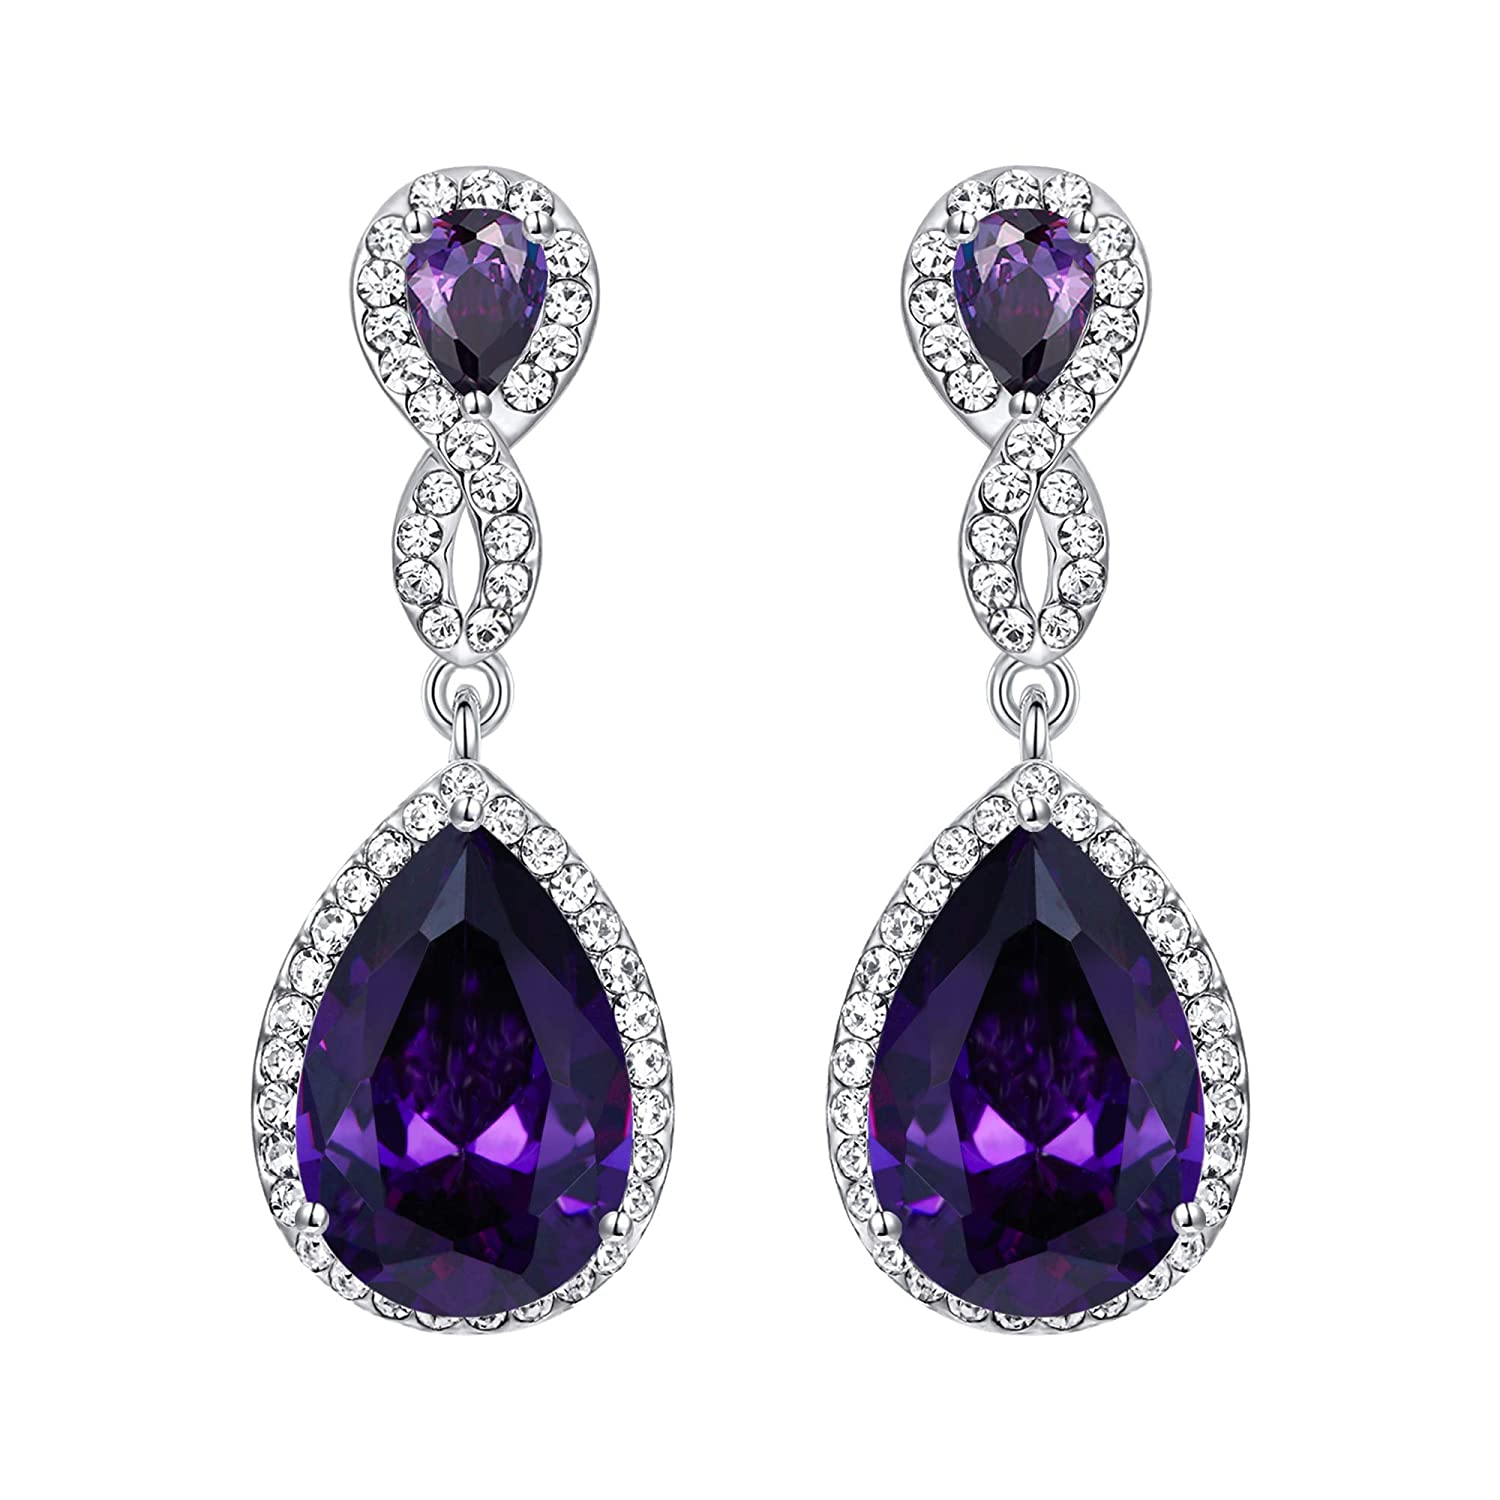 EVER FAITH Austrian Crystal Zircon Wedding 8-Shaped Pierced Dangle Earrings